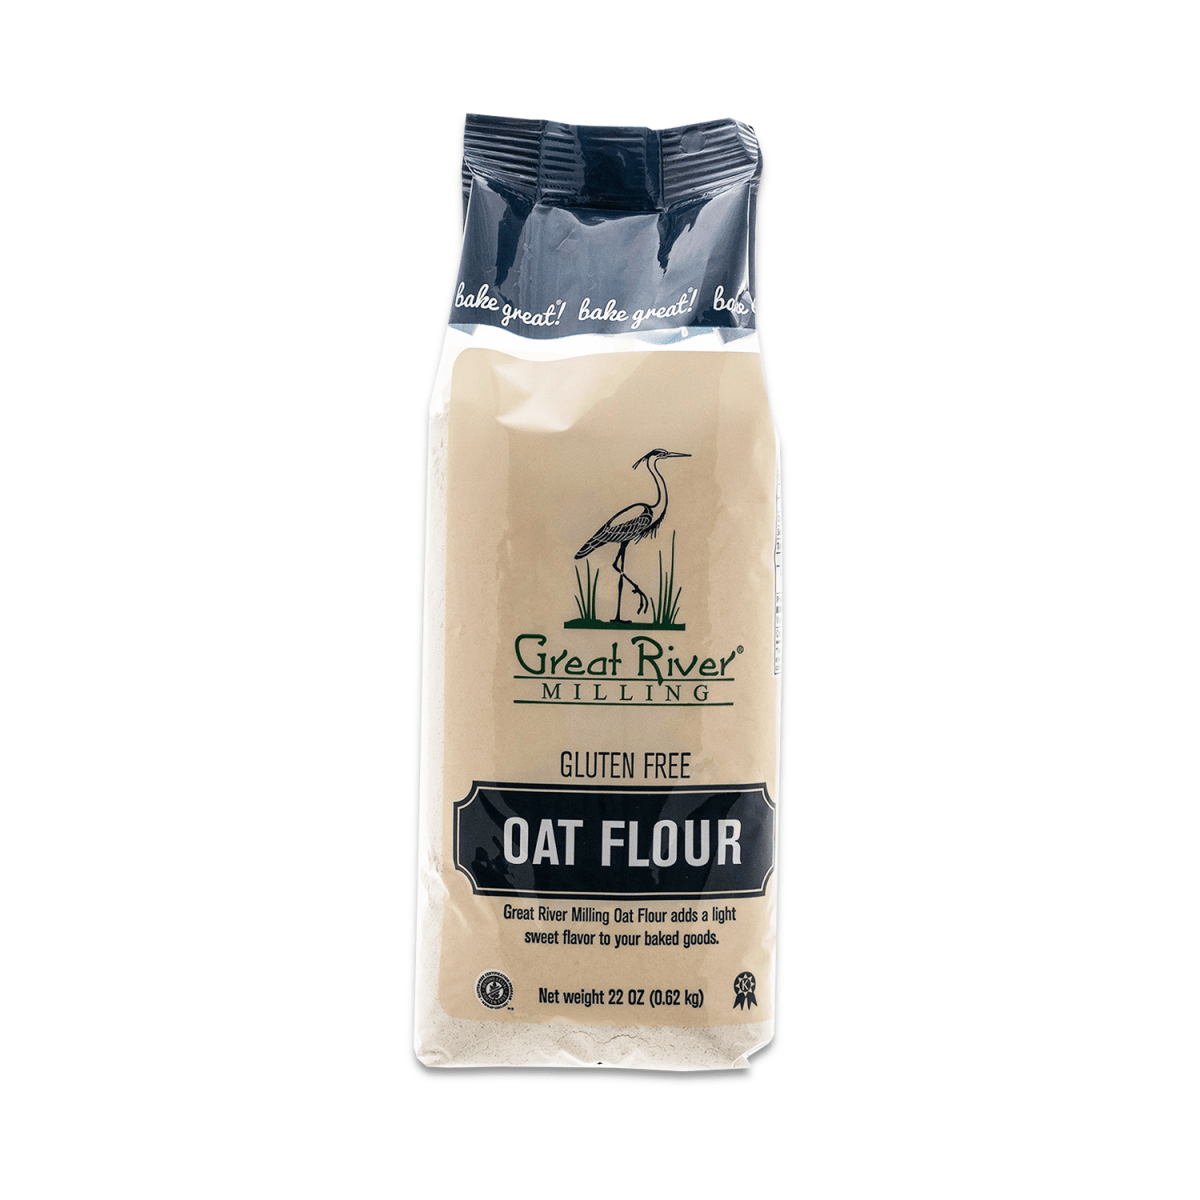 Great River Milling, GF, Oat Flour